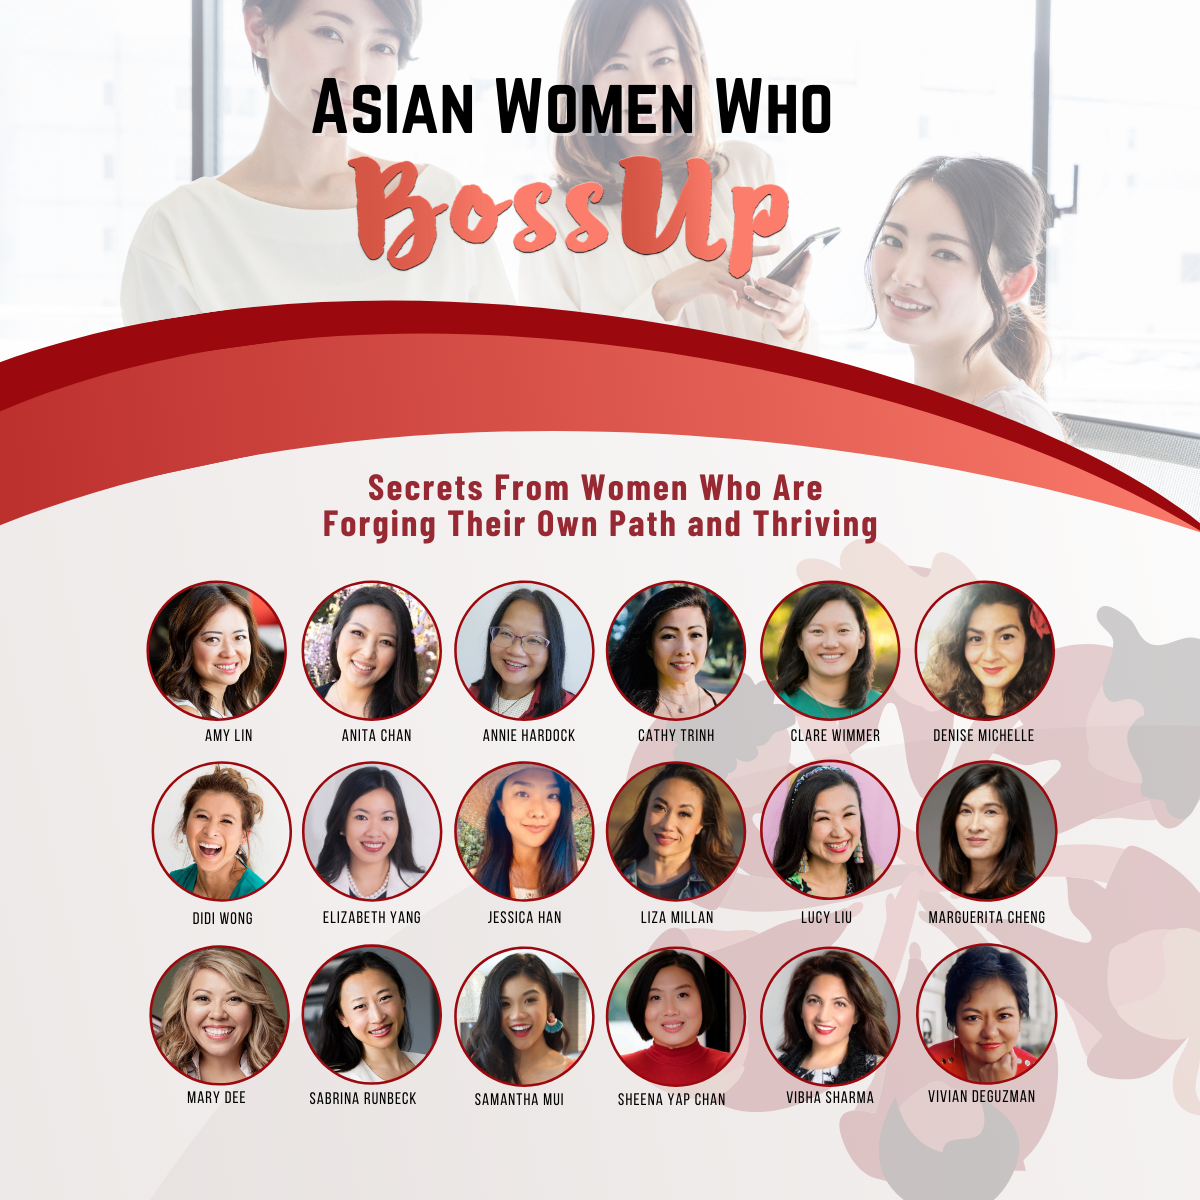 Meet The Authors From Asian Women Who Boss Up